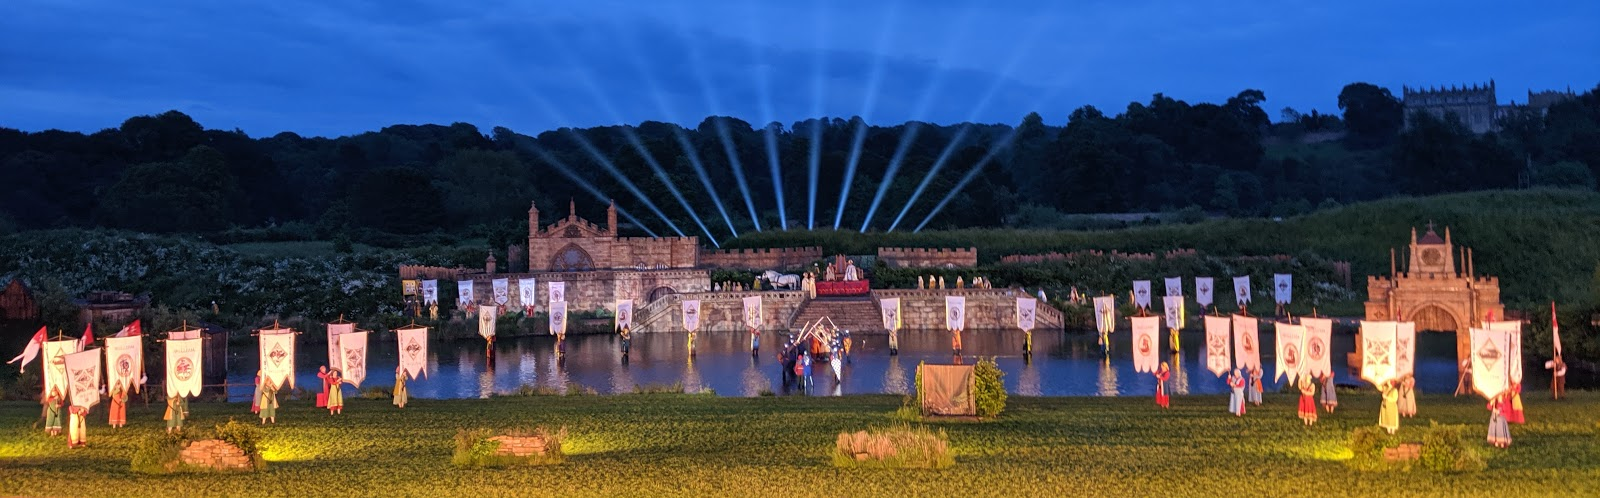 Kynren 2019 Review & A Summer of Historic Events | #Durham19